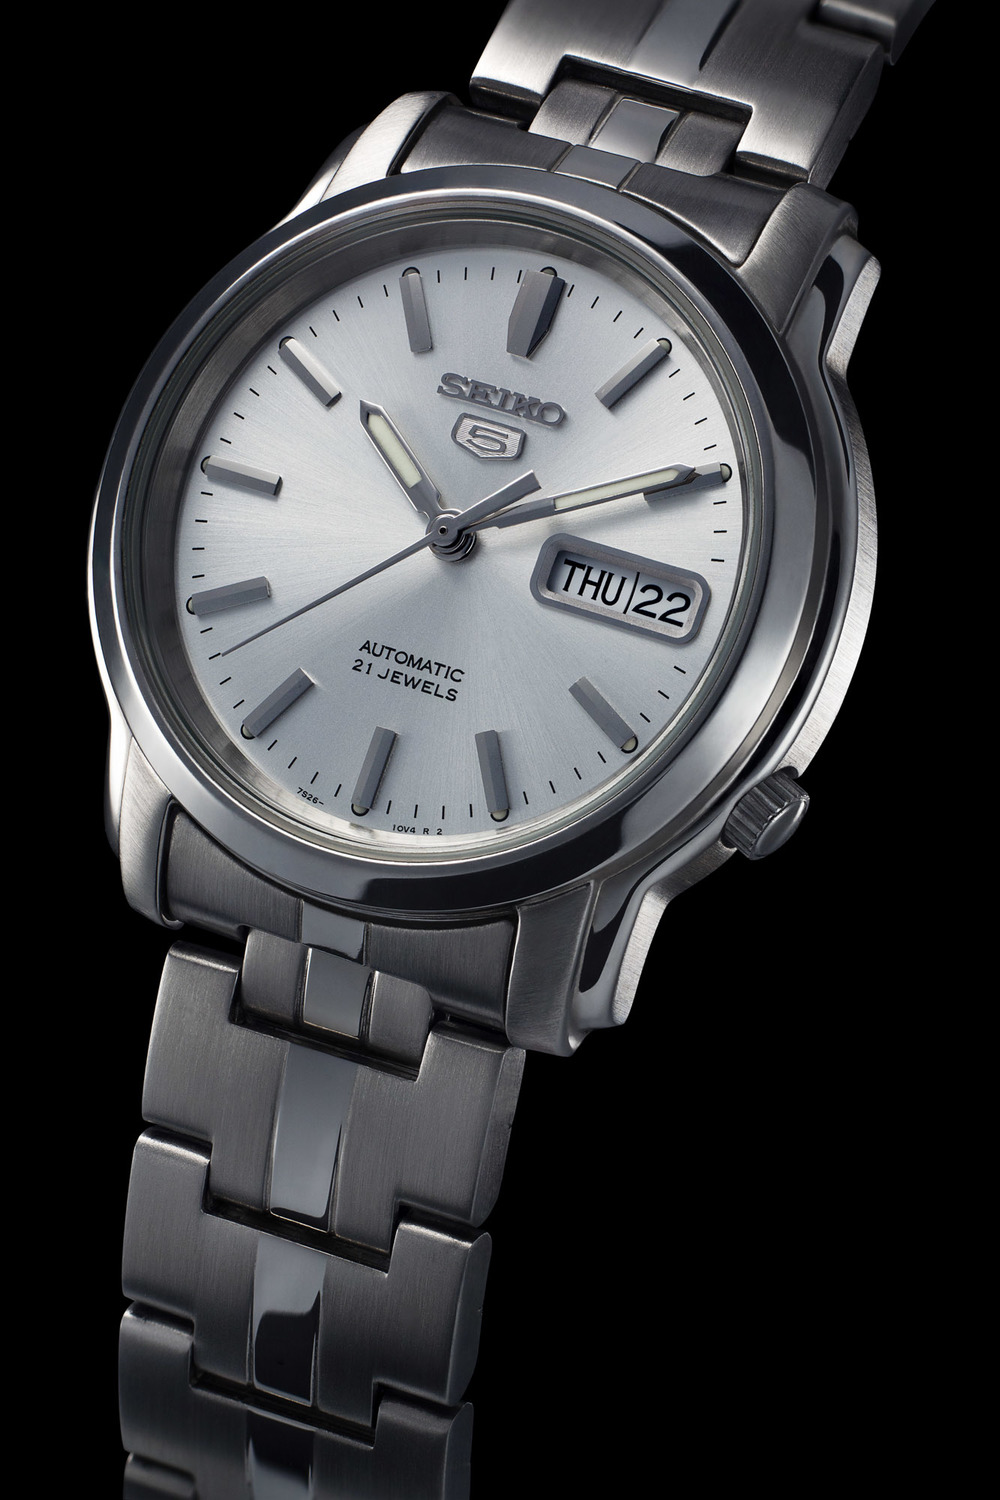 Fielder Williams Strain fiwist Product Photographer seiko watch.jpg